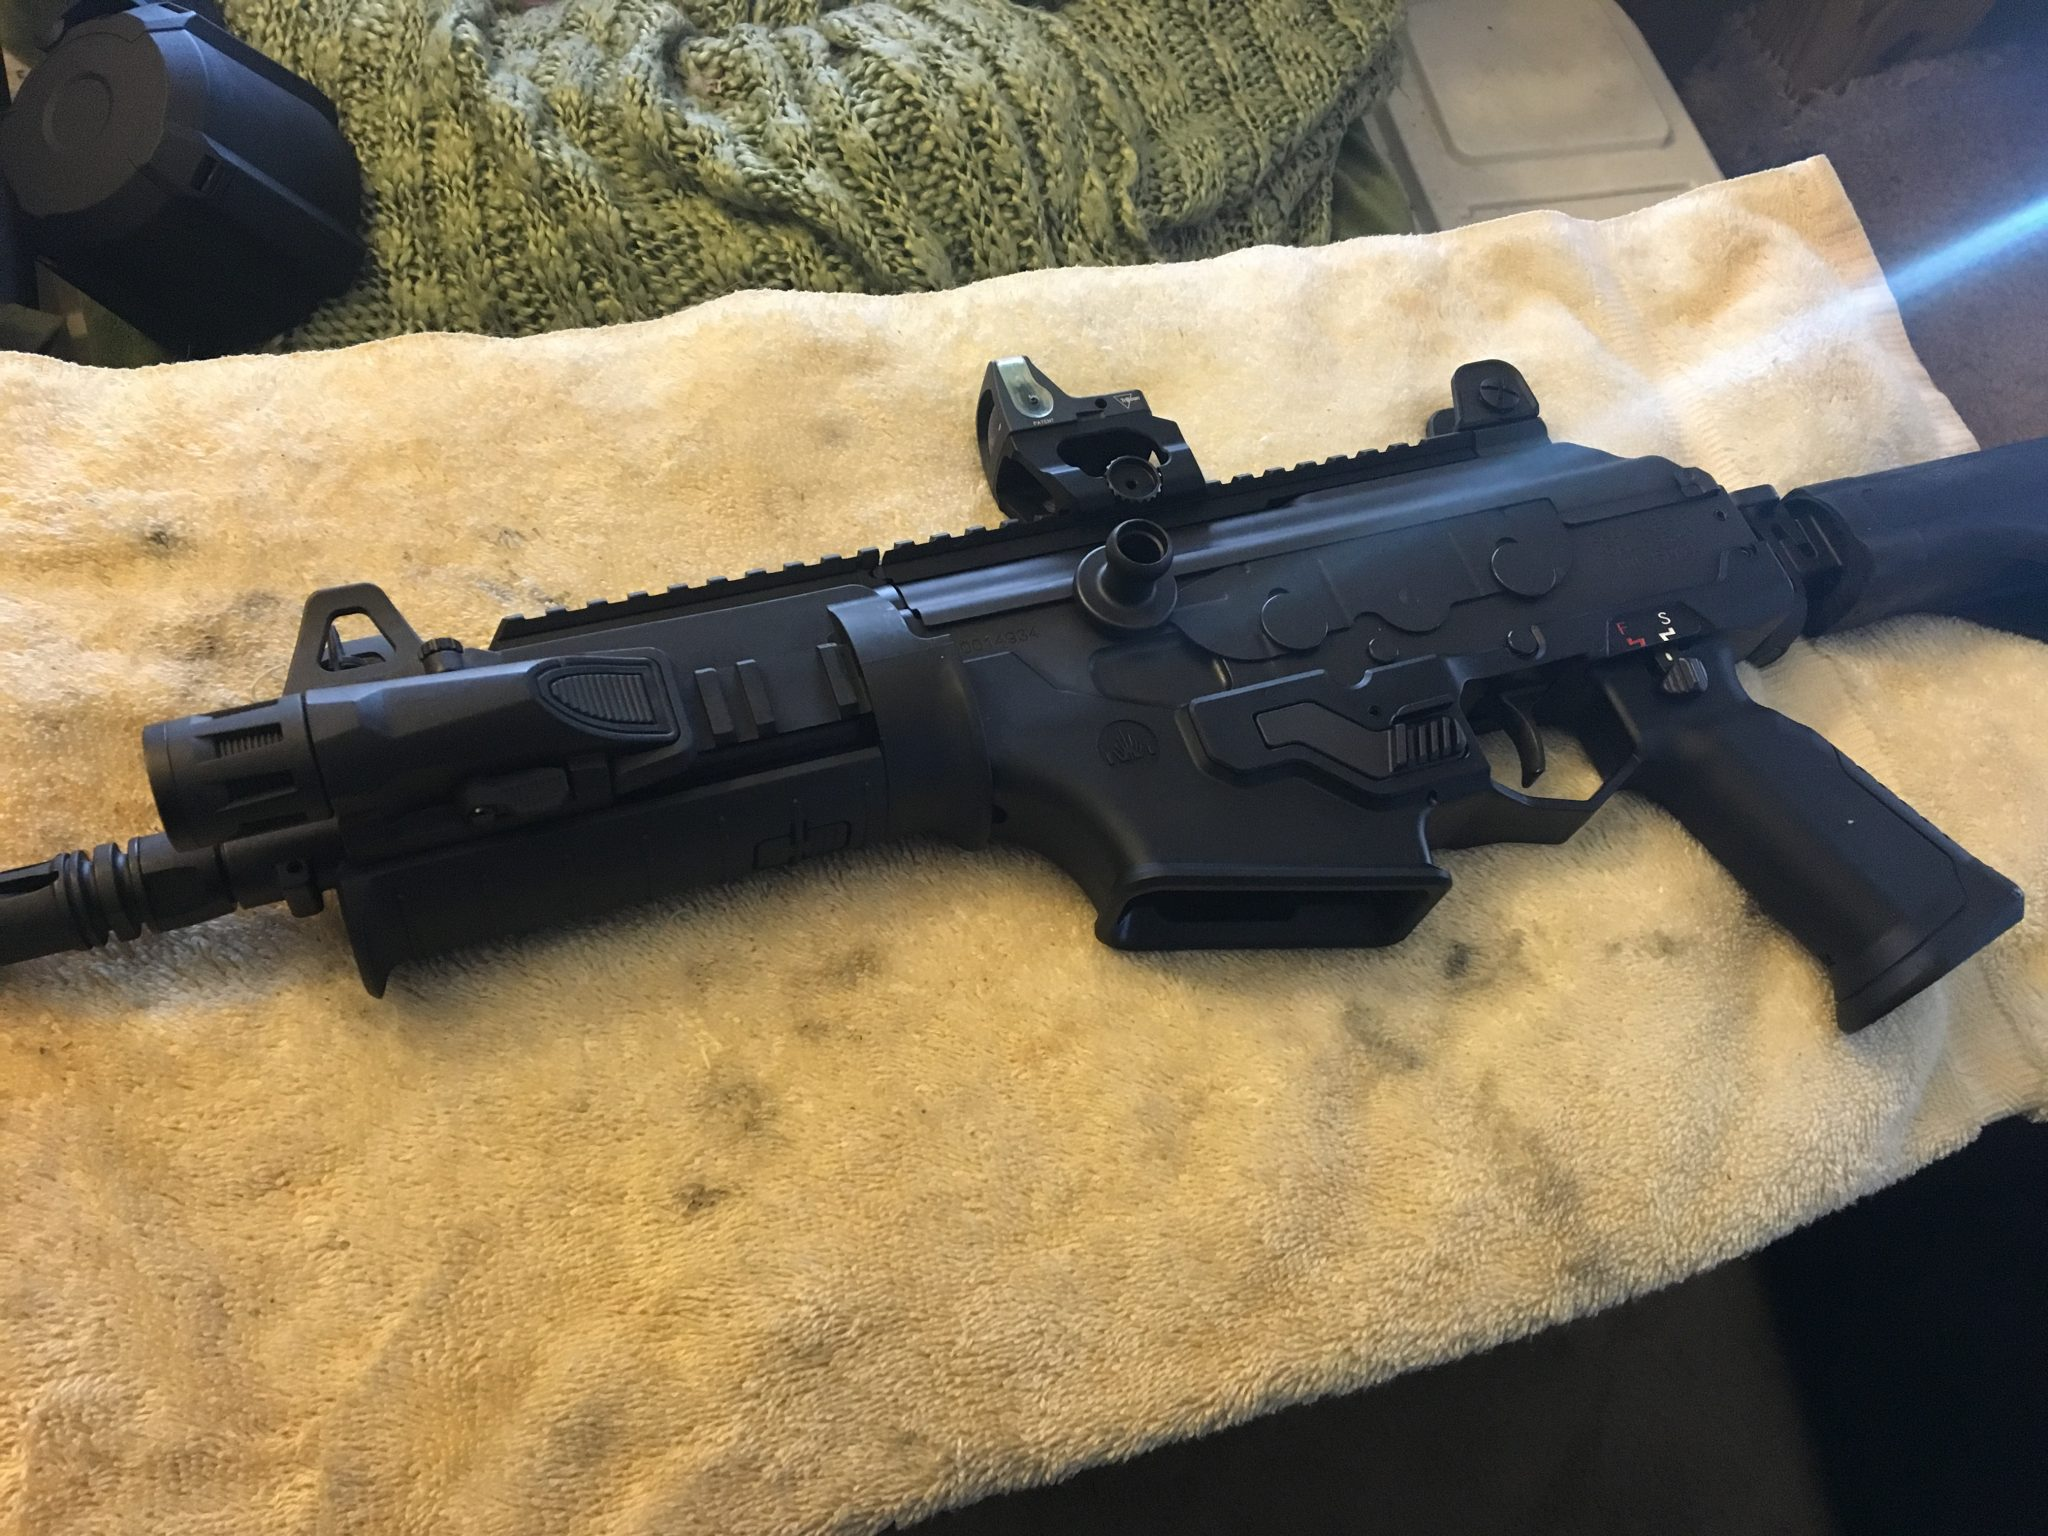 Review: IWI Galil ACE Pistol, An Epitome in EDC Carbines